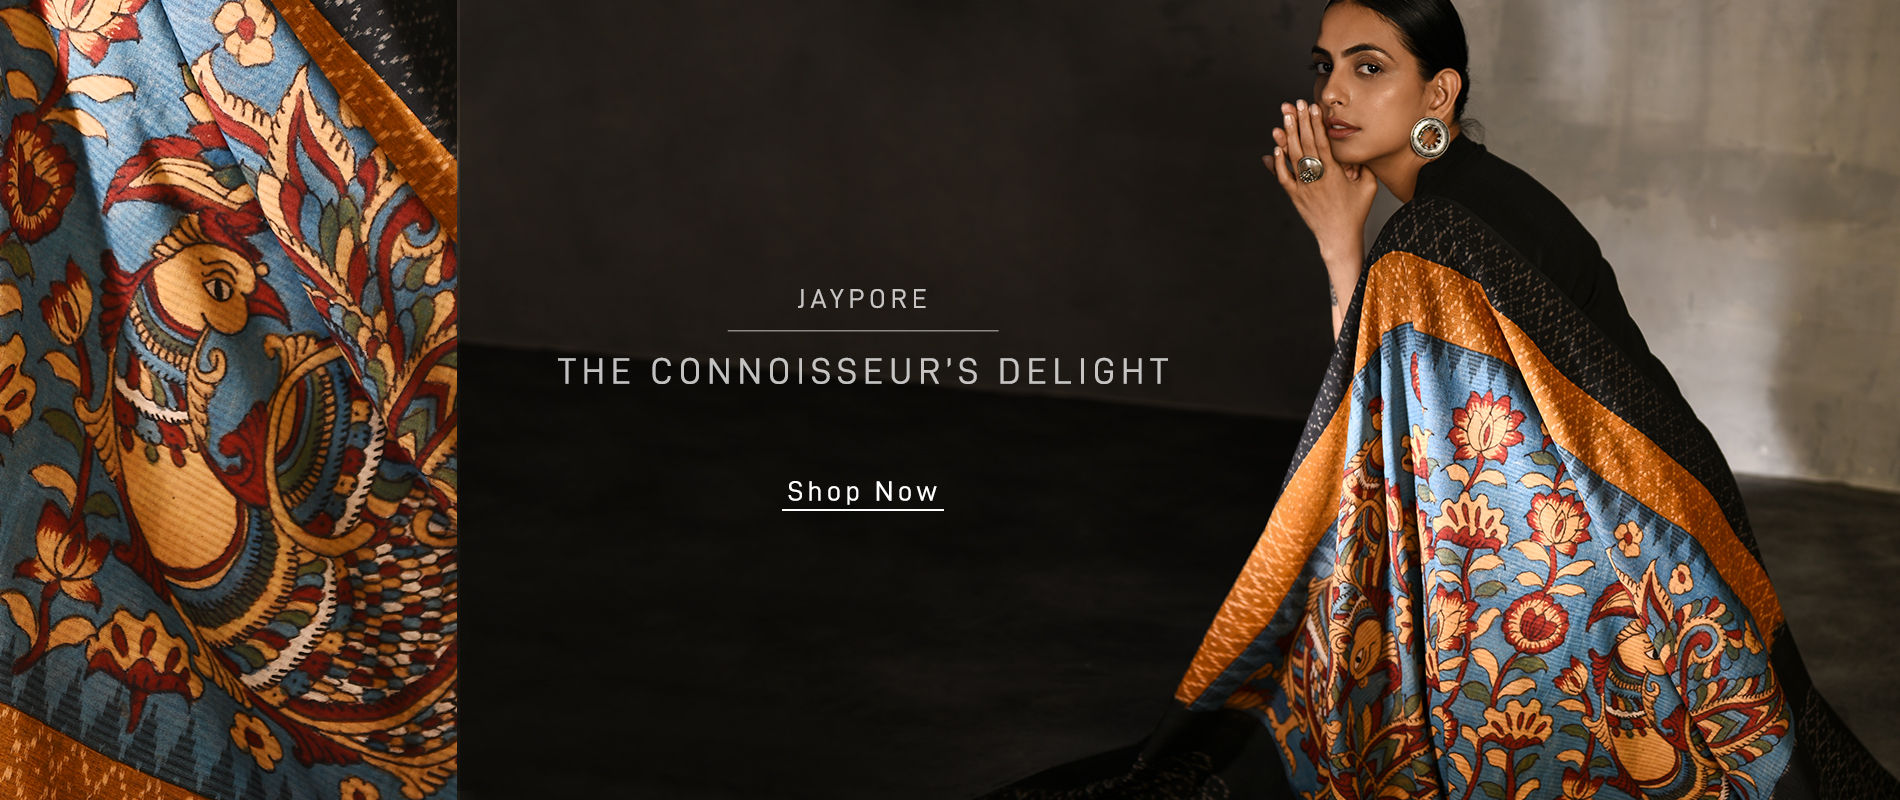 bf0325161b Jaypore.com: Curated Online Shop for Handpicked Products, Vintage ...